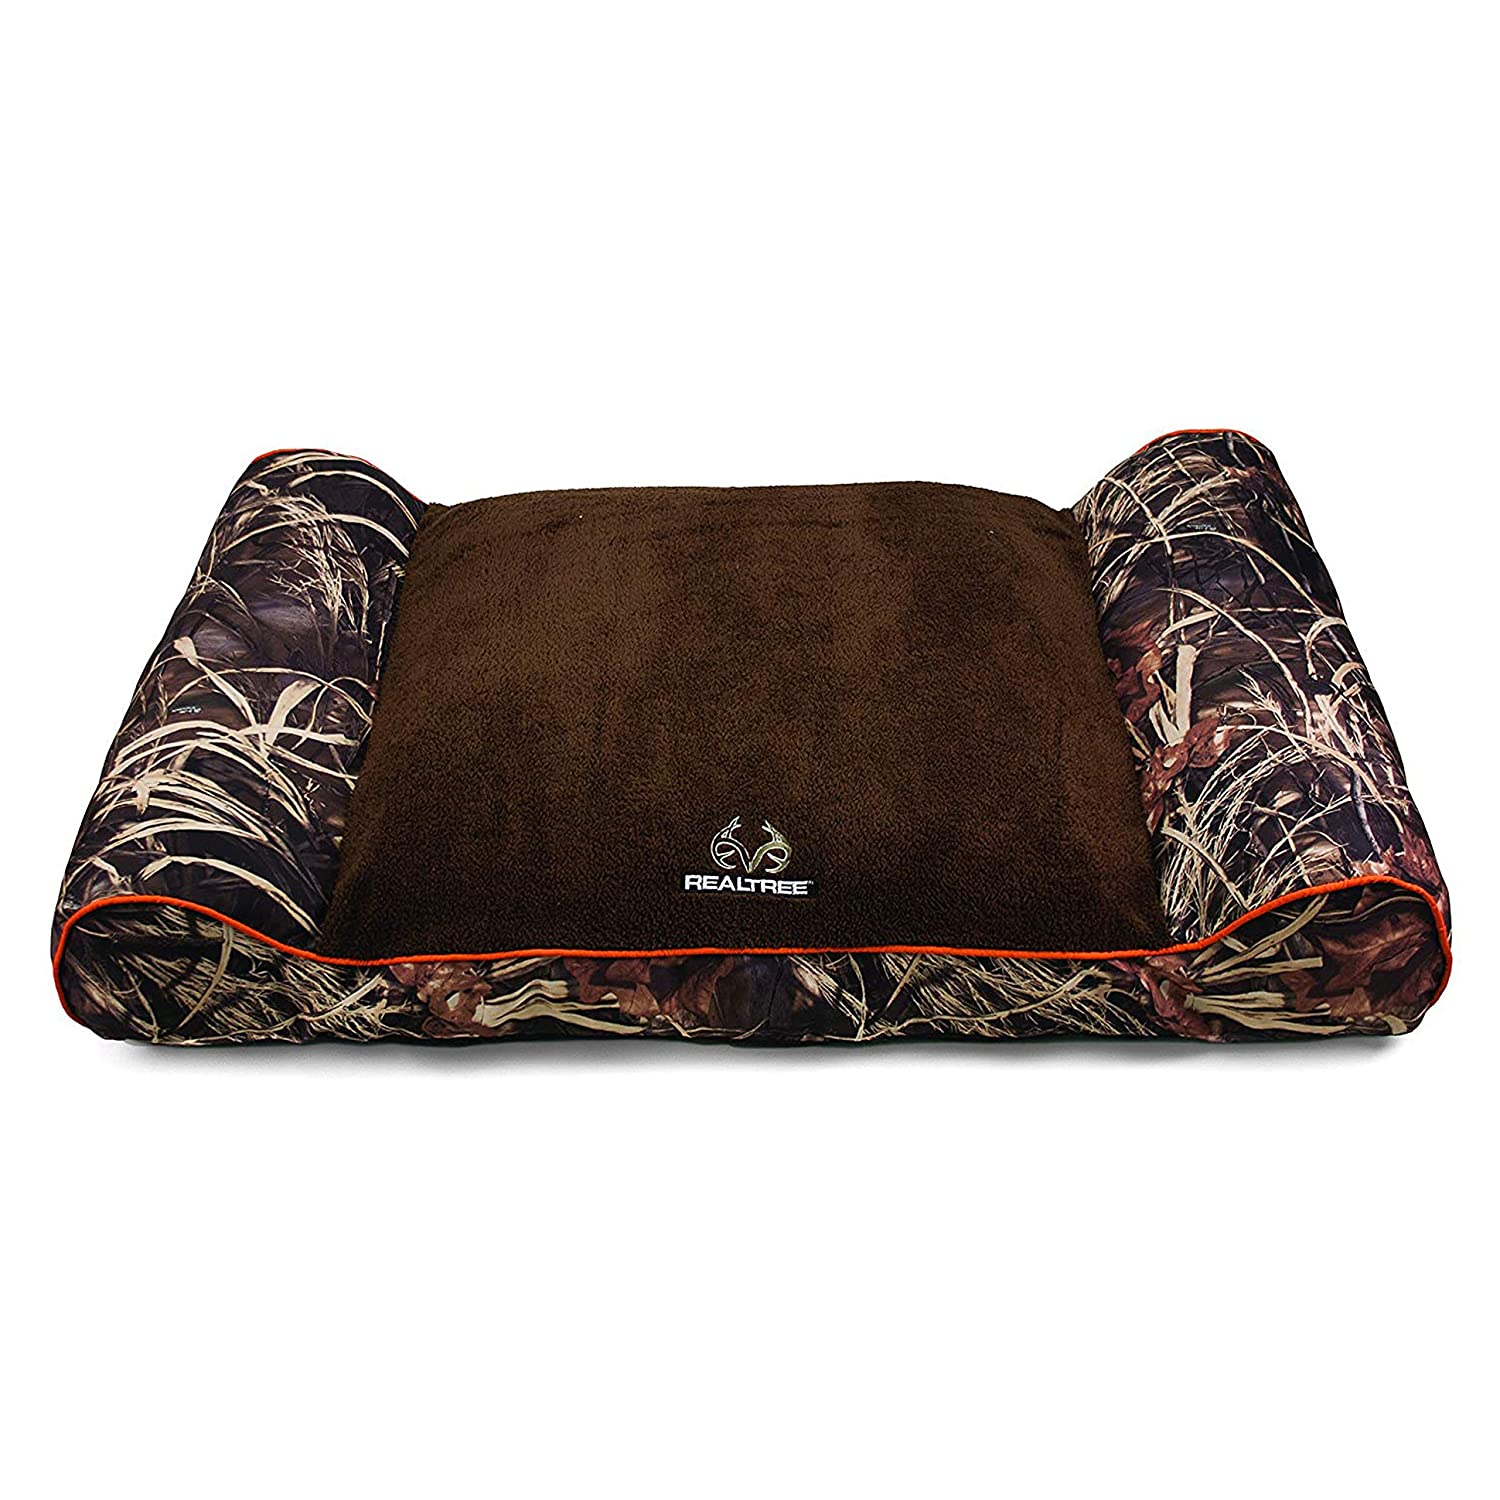 Taupe with orange Piping Dallas Manufacturing Co. Dallas CL4830-160.1 Realtree Giant Camo Pet Bed with Bolstered Ends, Taupe with orange Piping, 48  x 30